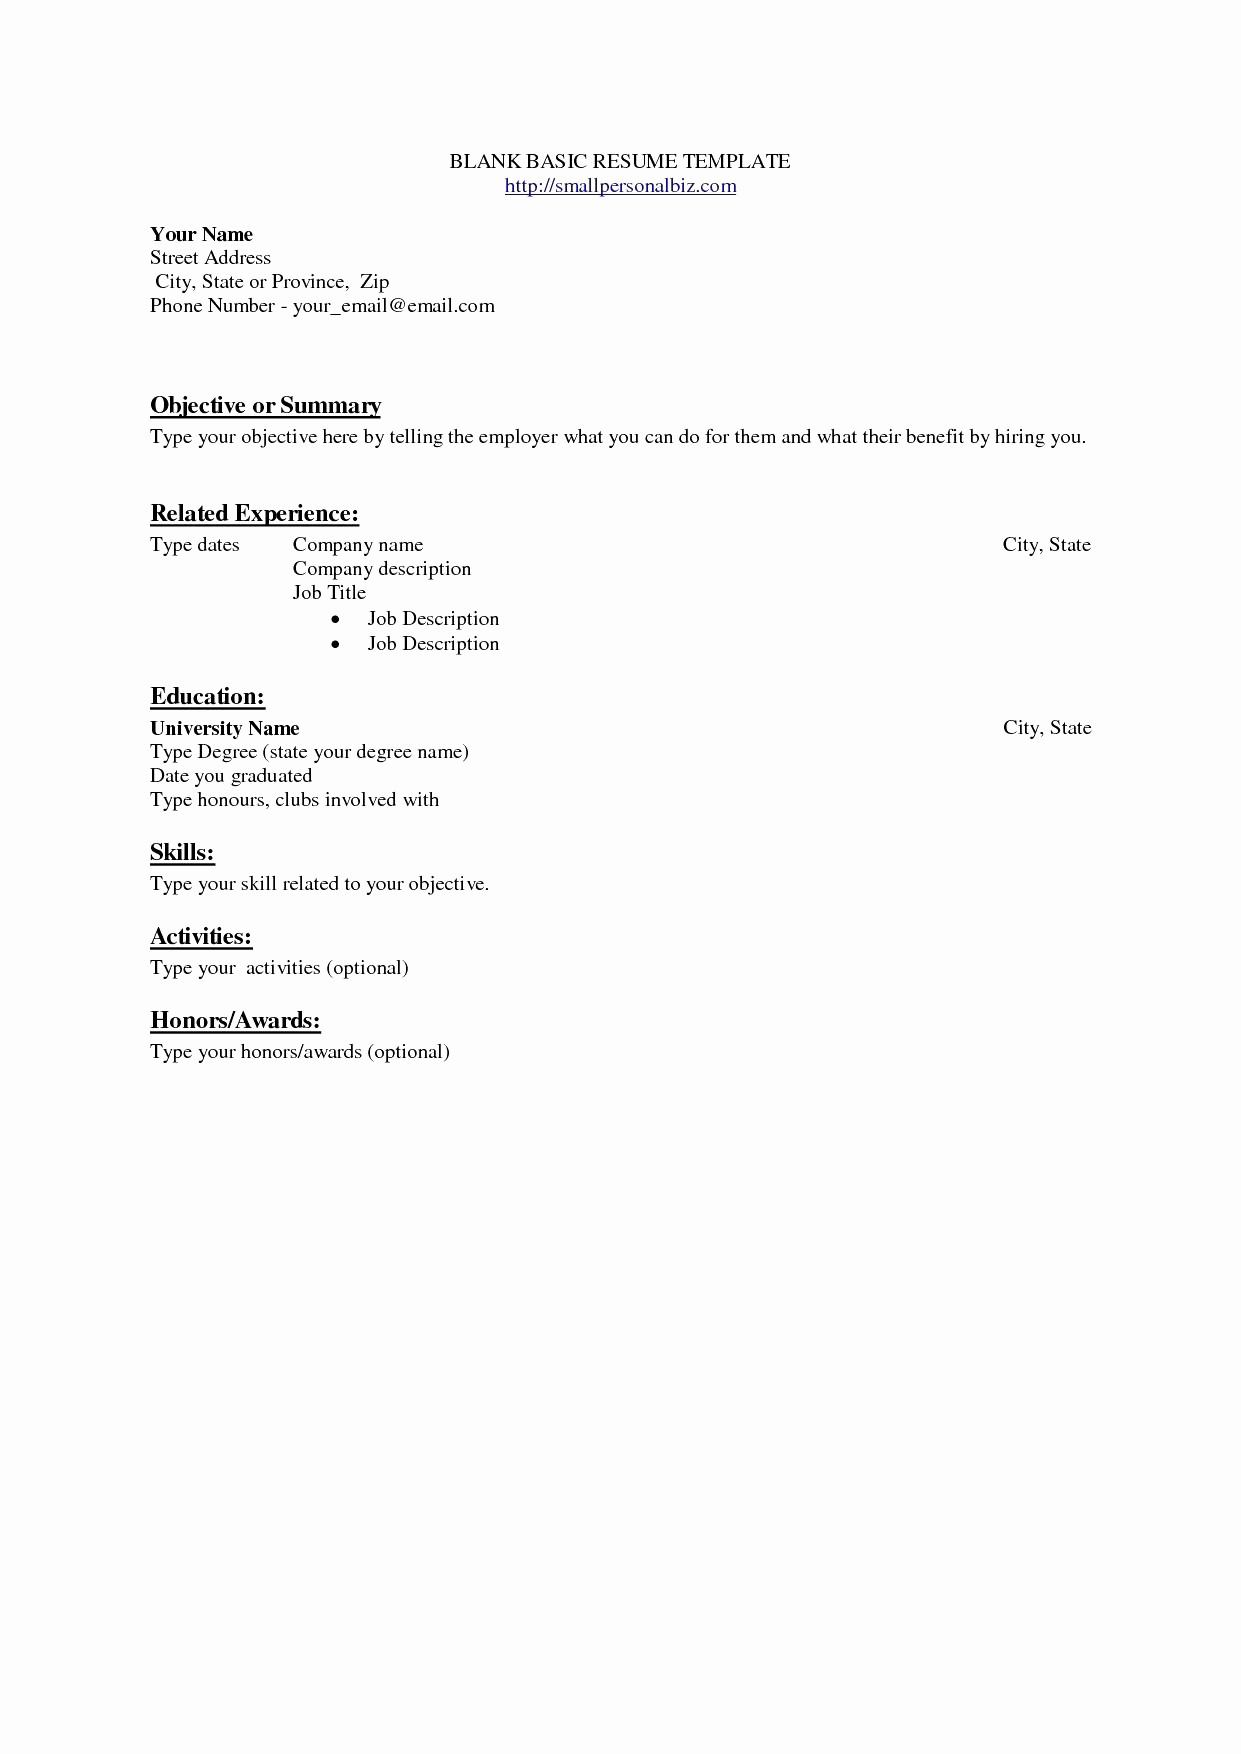 Craiglist Resume - Post Resume Craigslist New Reference Search Resumes Craigslist